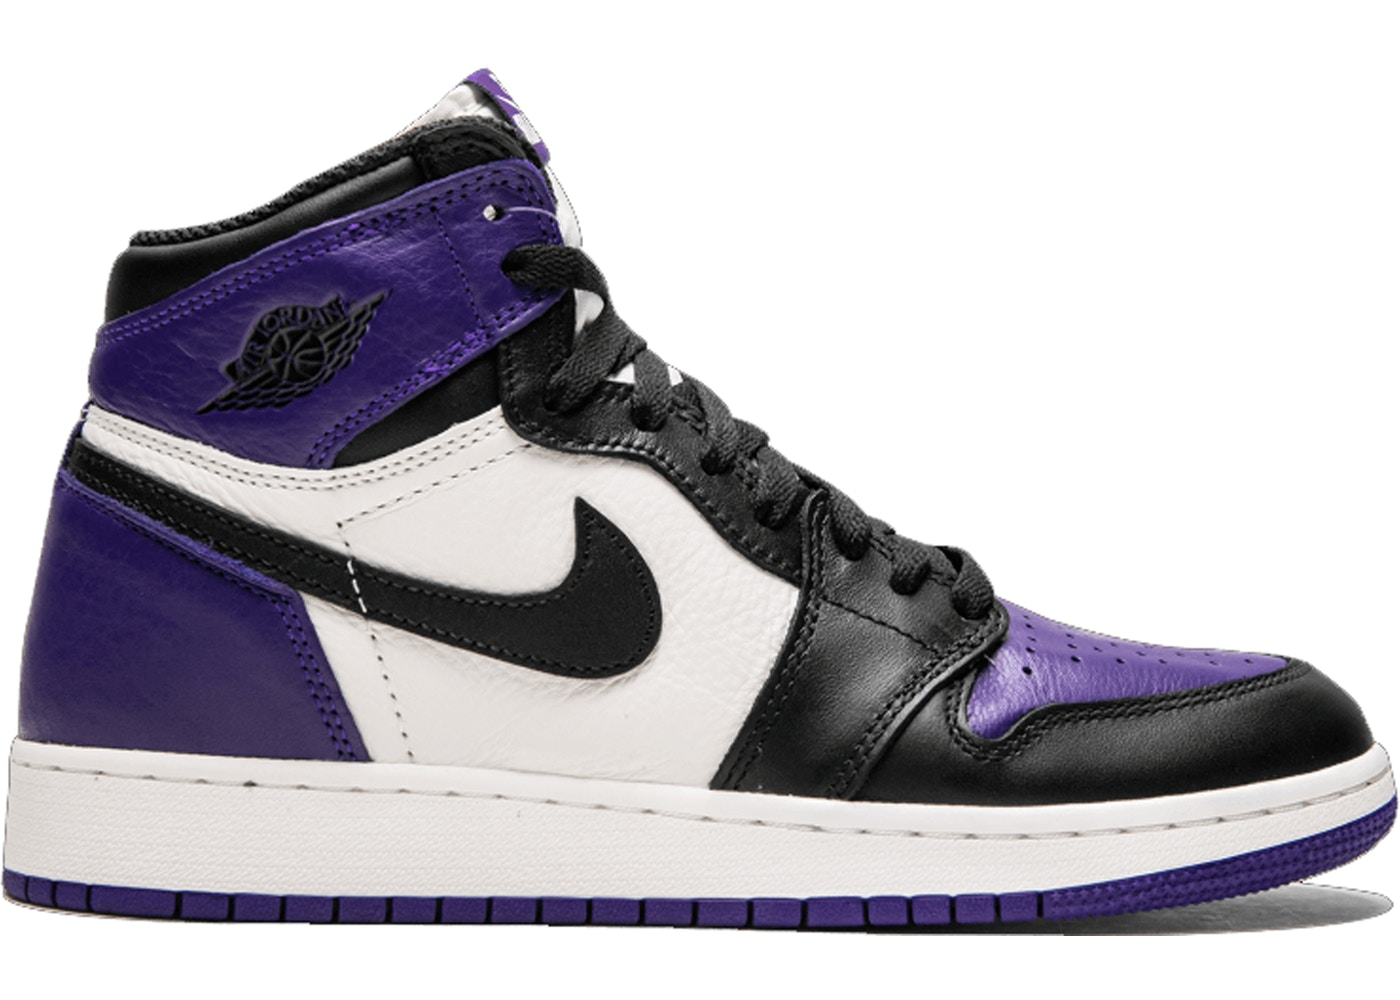 2f0bbaa06cb Jordan 1 Retro High Court Purple (GS) - 575441-501